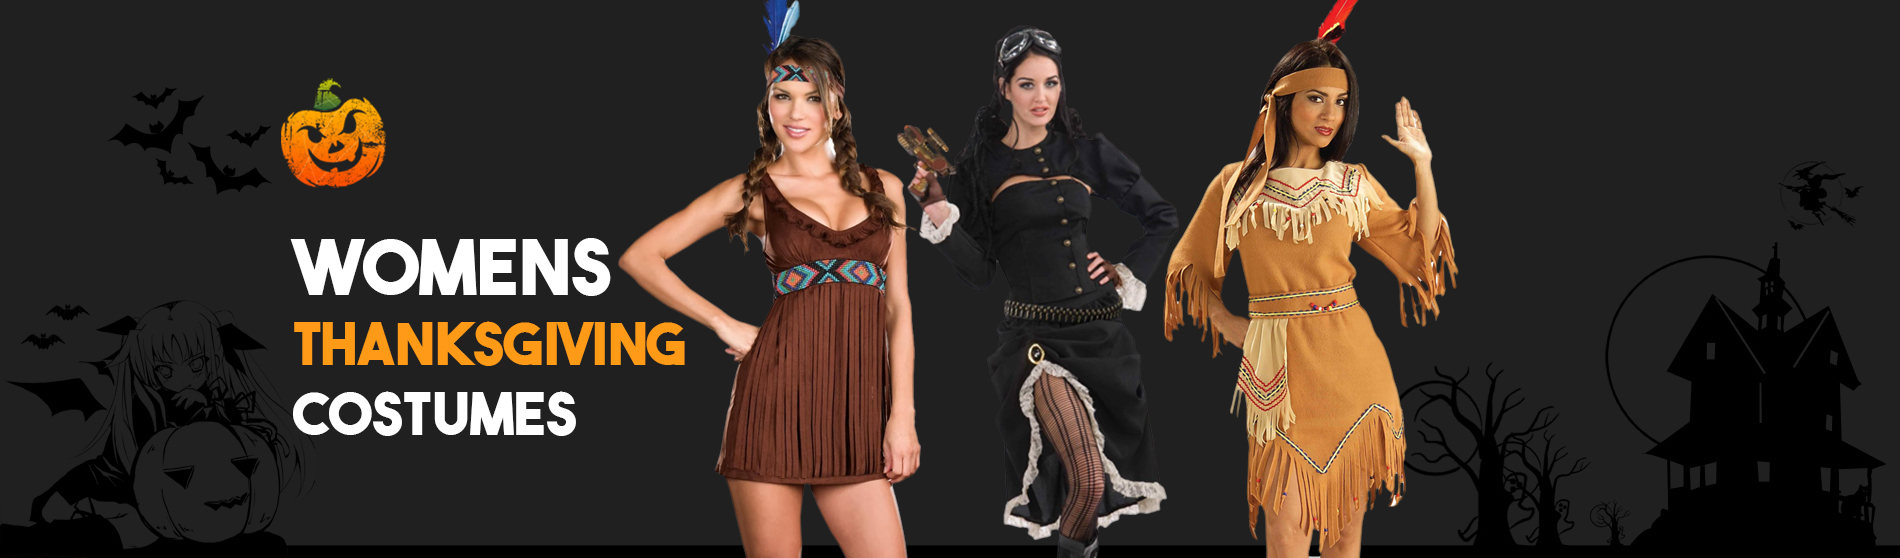 Womens Thanksgiving Costumes